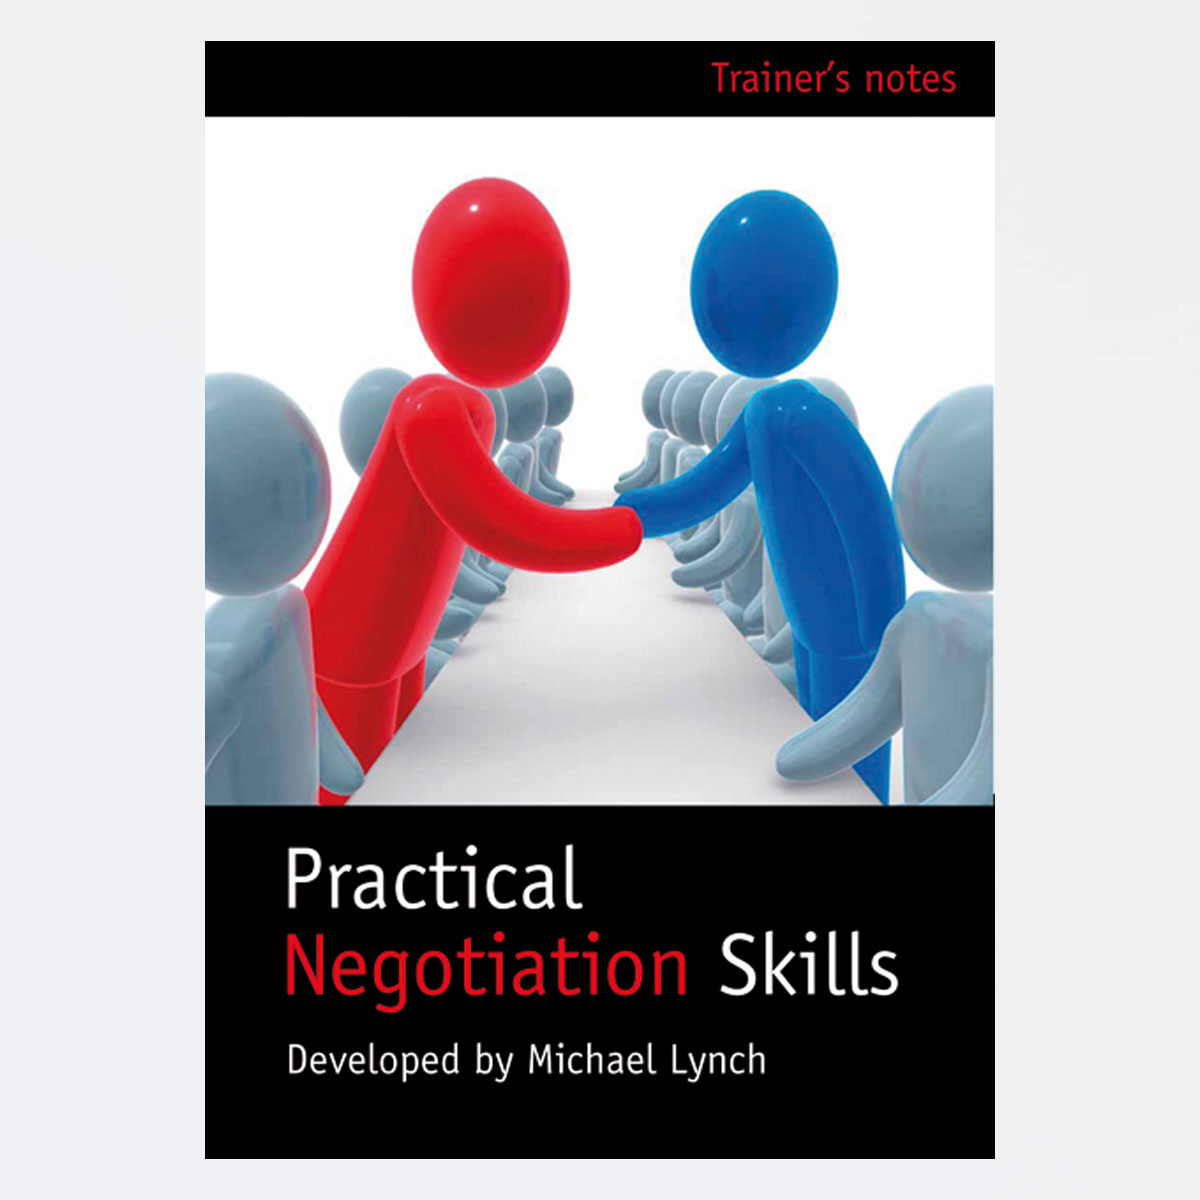 Practical Negotiation Skills | Negotiation Training Activity